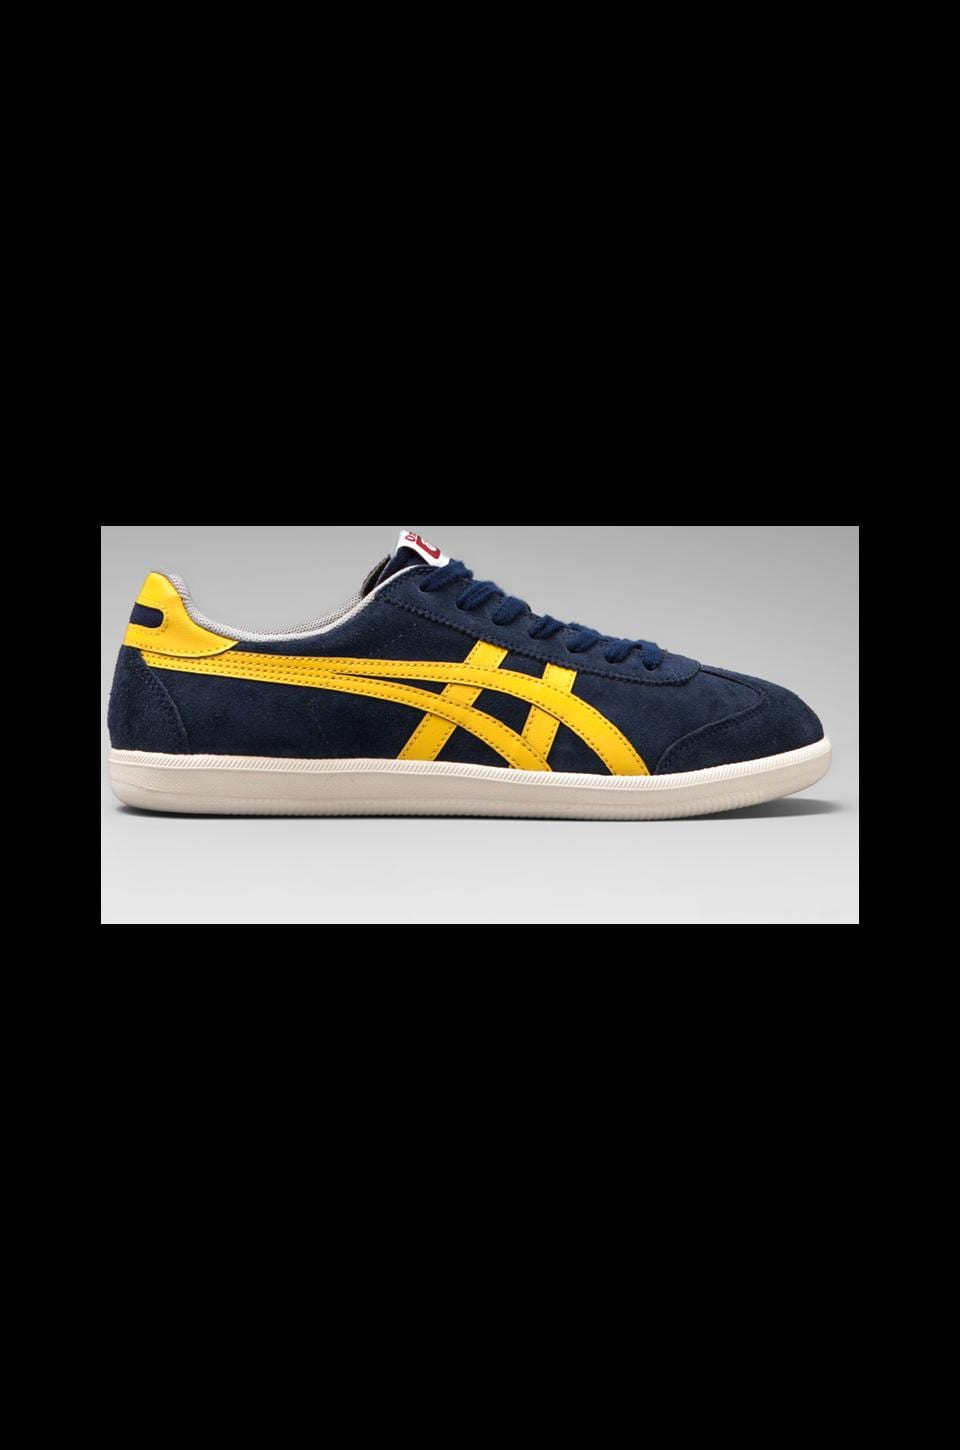 Onitsuka Tiger Tokuten in Navy/Yellow